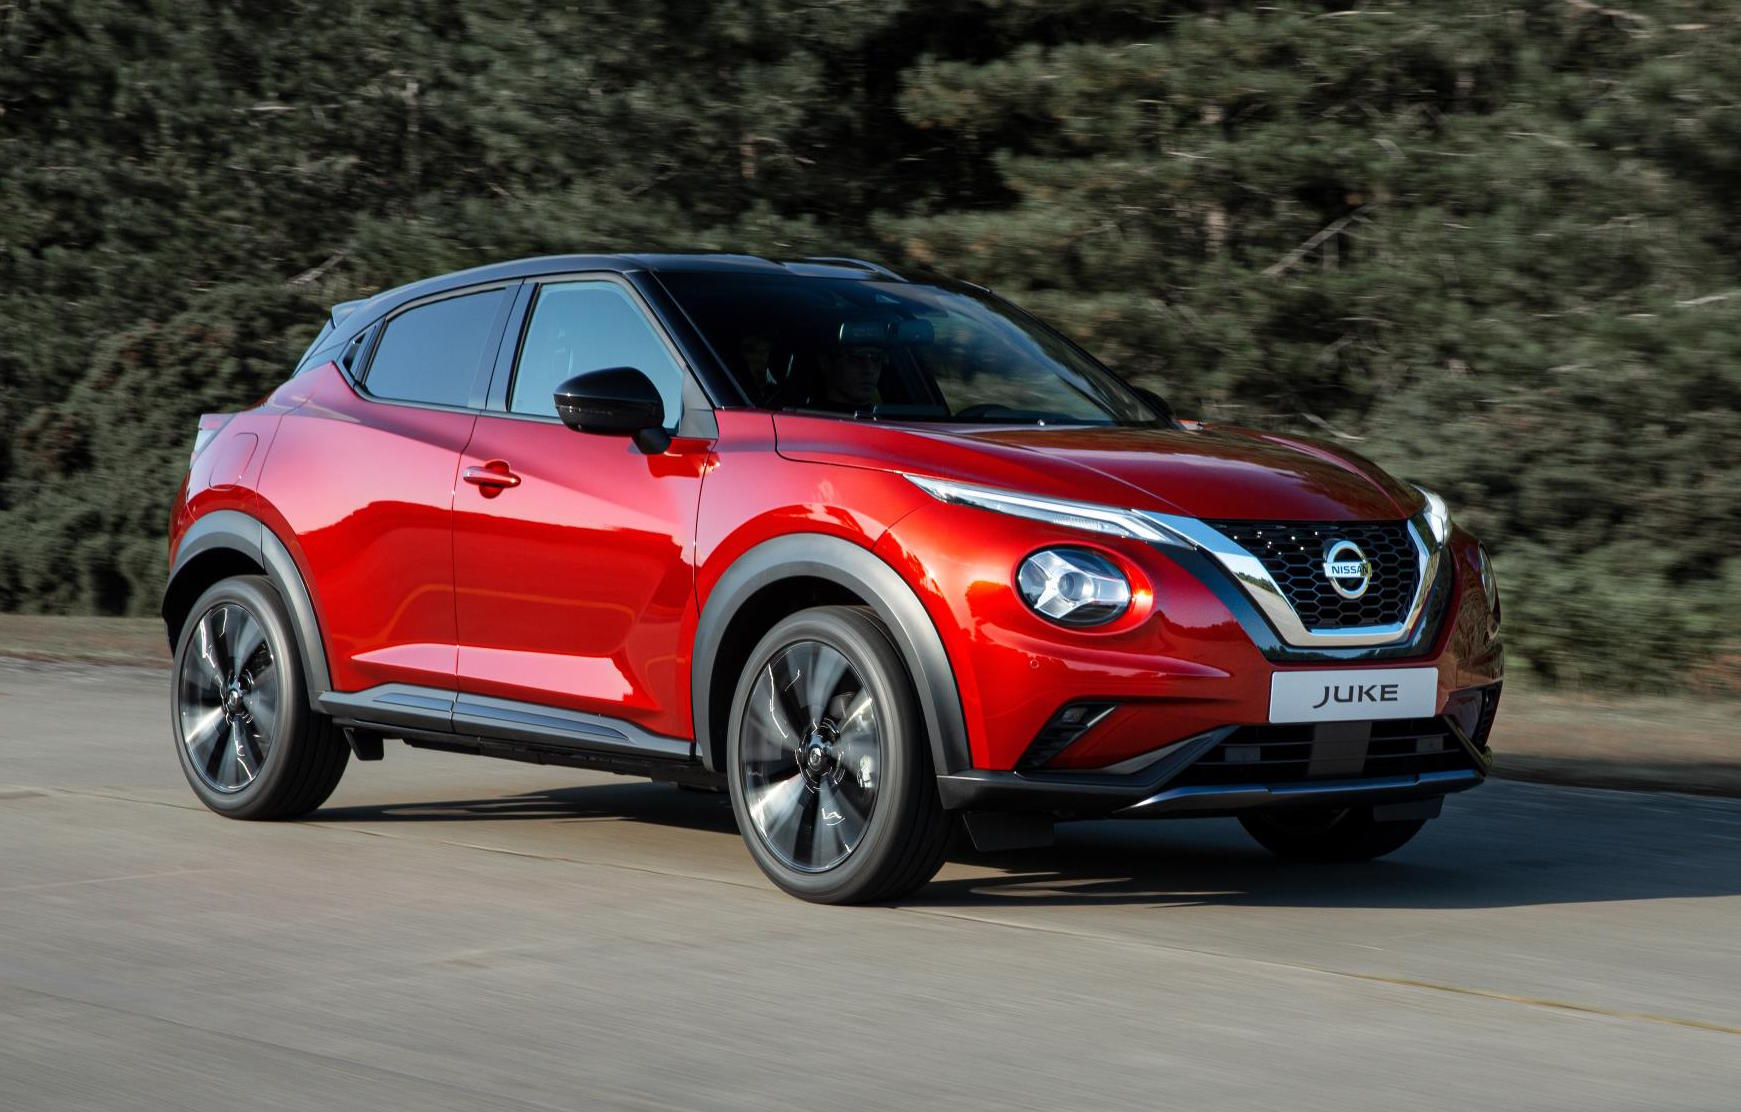 2020 nissan juke revealed  1 0 turbo  7spd dct  propilot tech